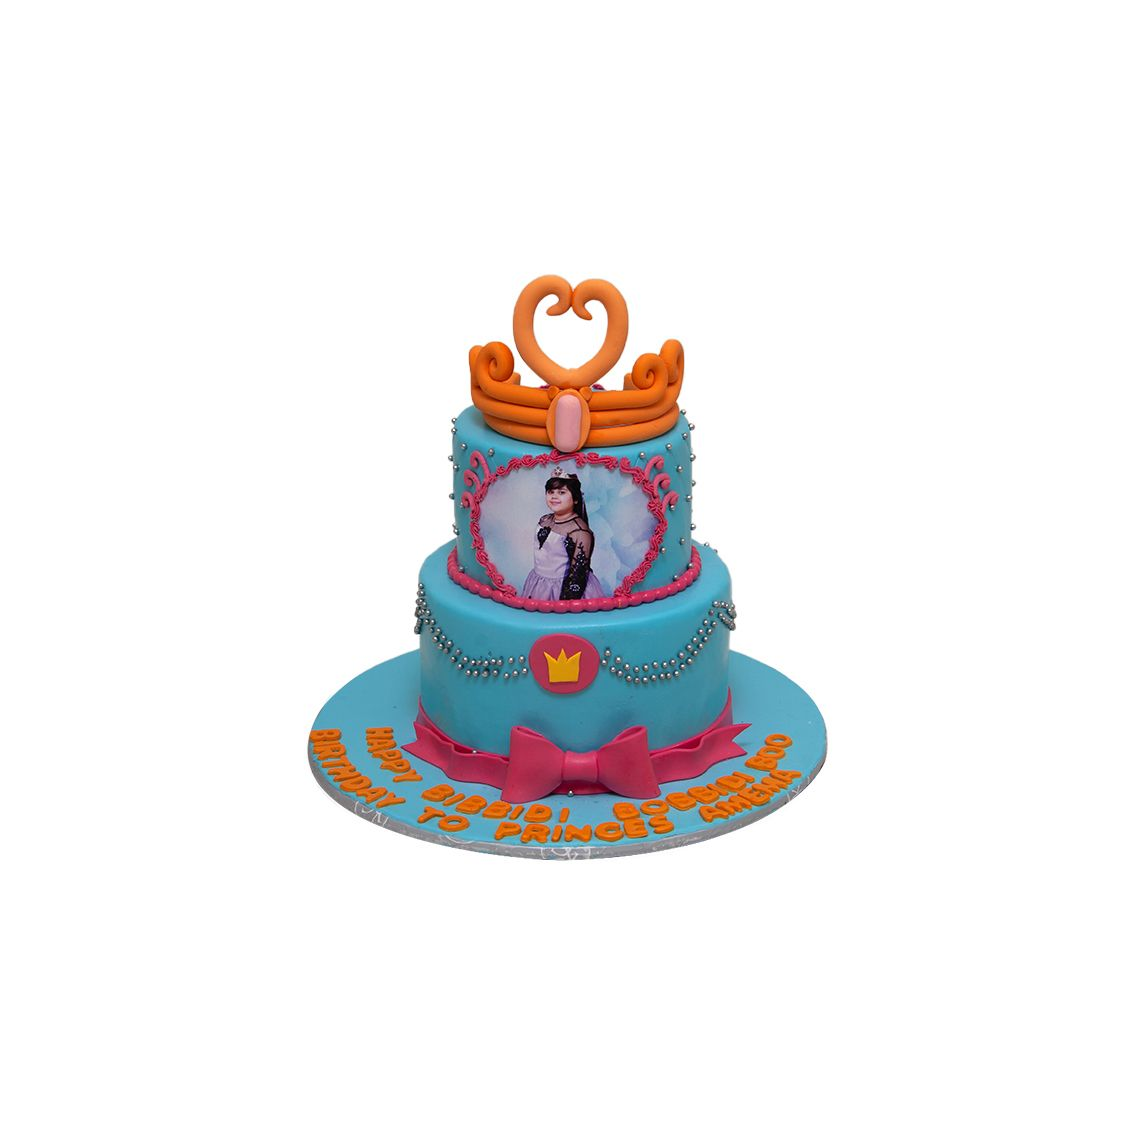 Kitchen Cuisine Default Category Princess Theme Cake